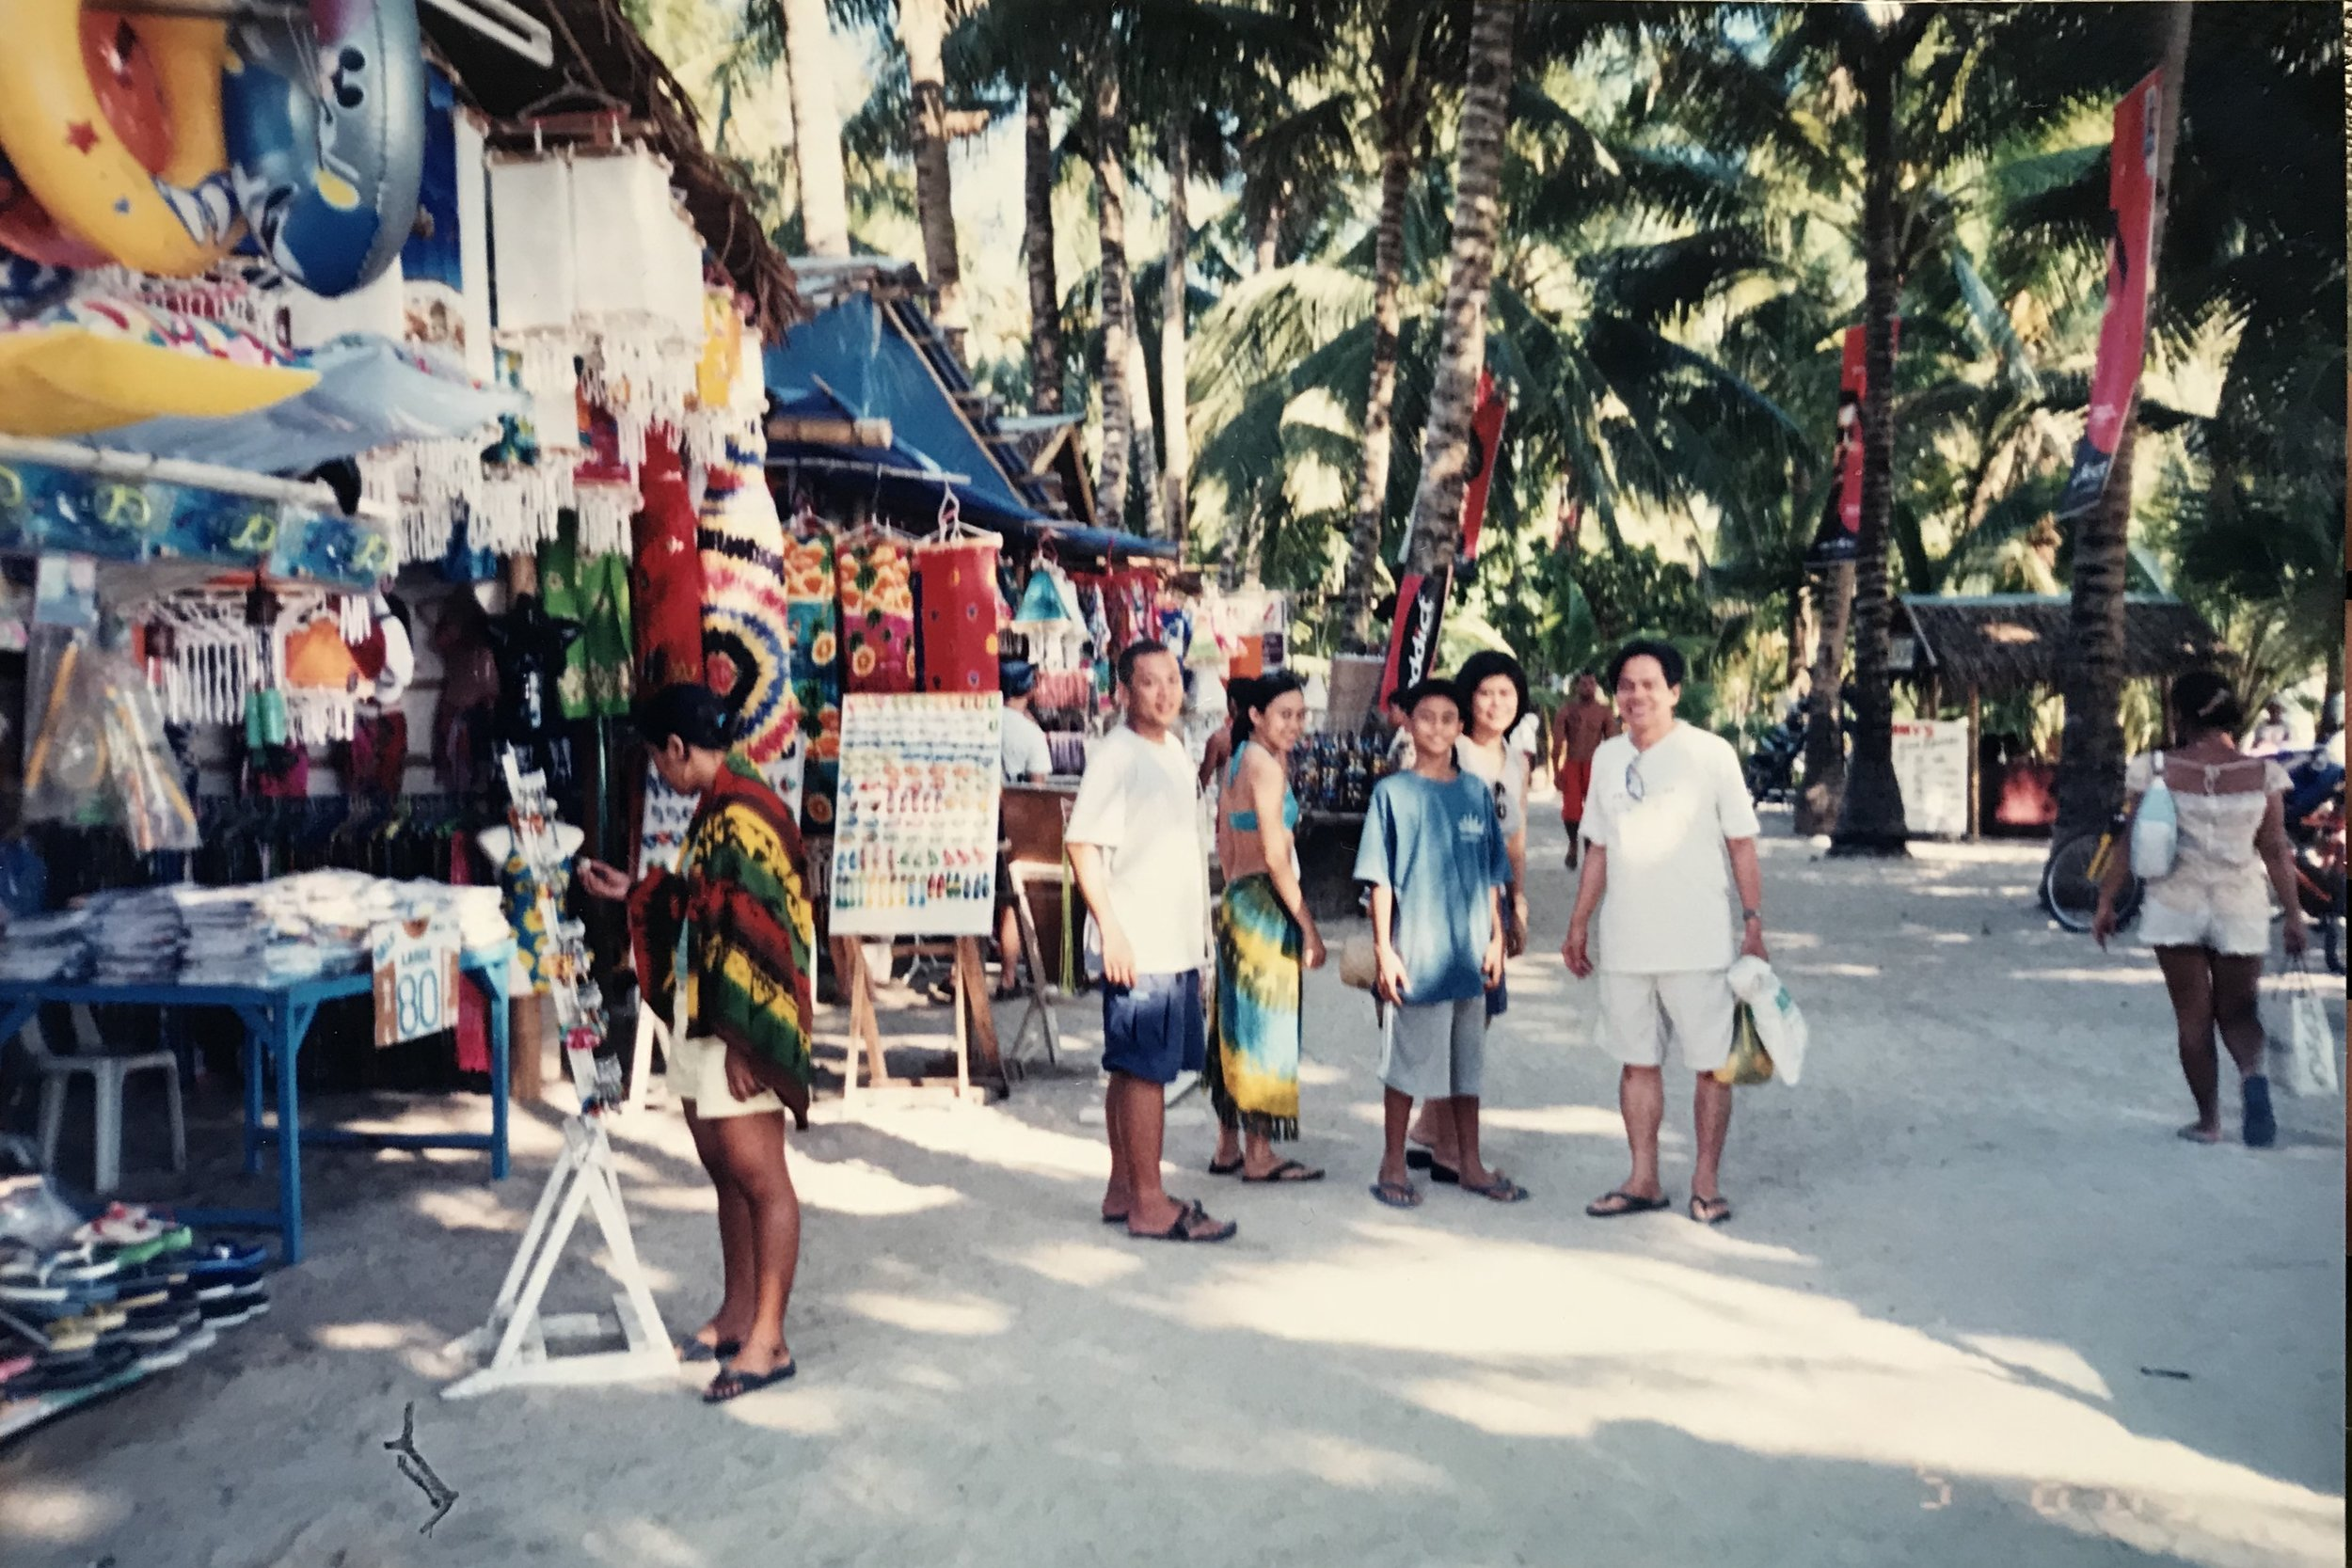 2003: Sarong and lantern heaven. These beautiful kubos have since made way for ugly buildings. There, I said it.